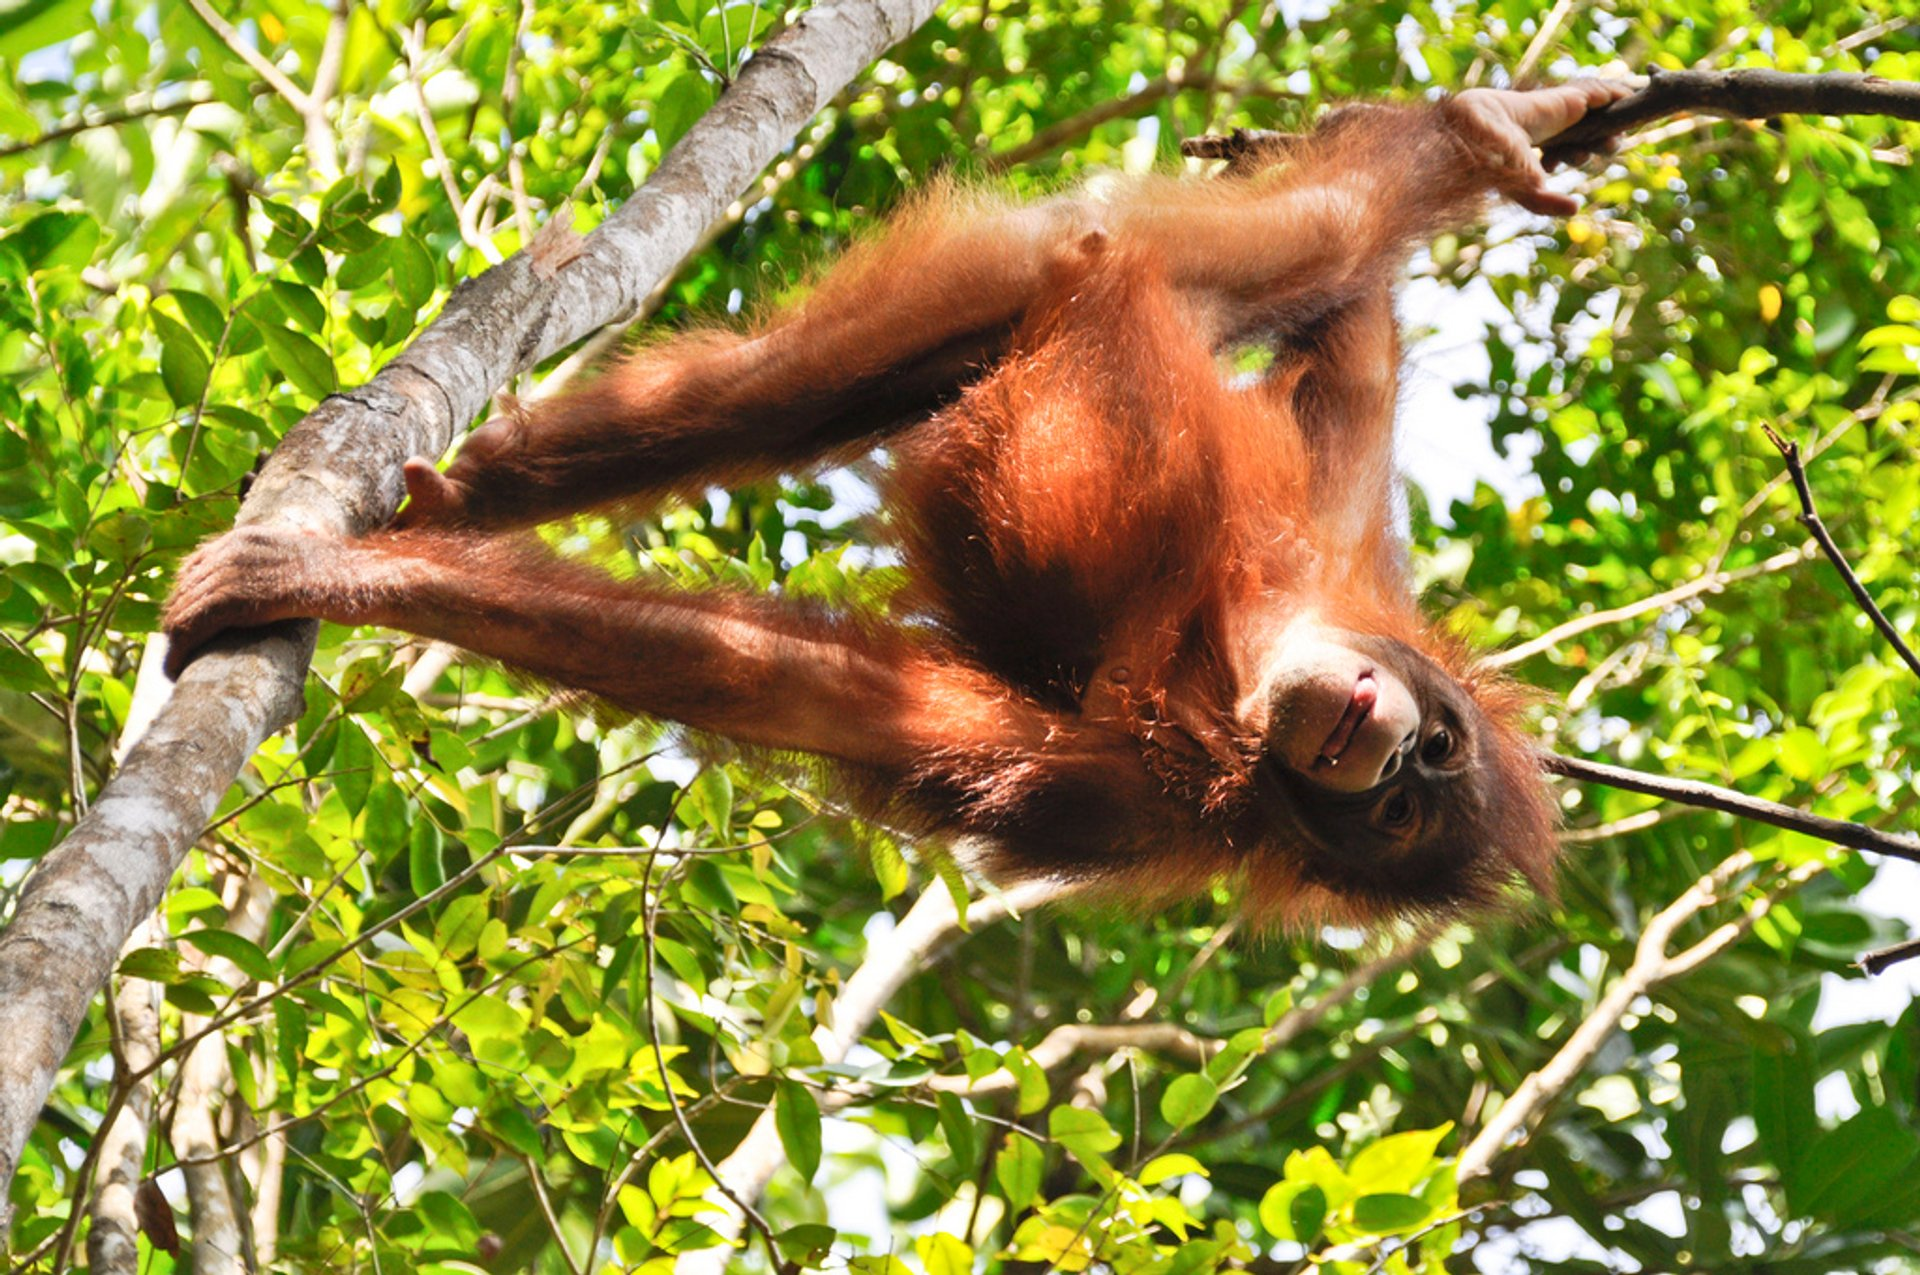 Watching Orangutans in Malaysia 2020 - Best Time